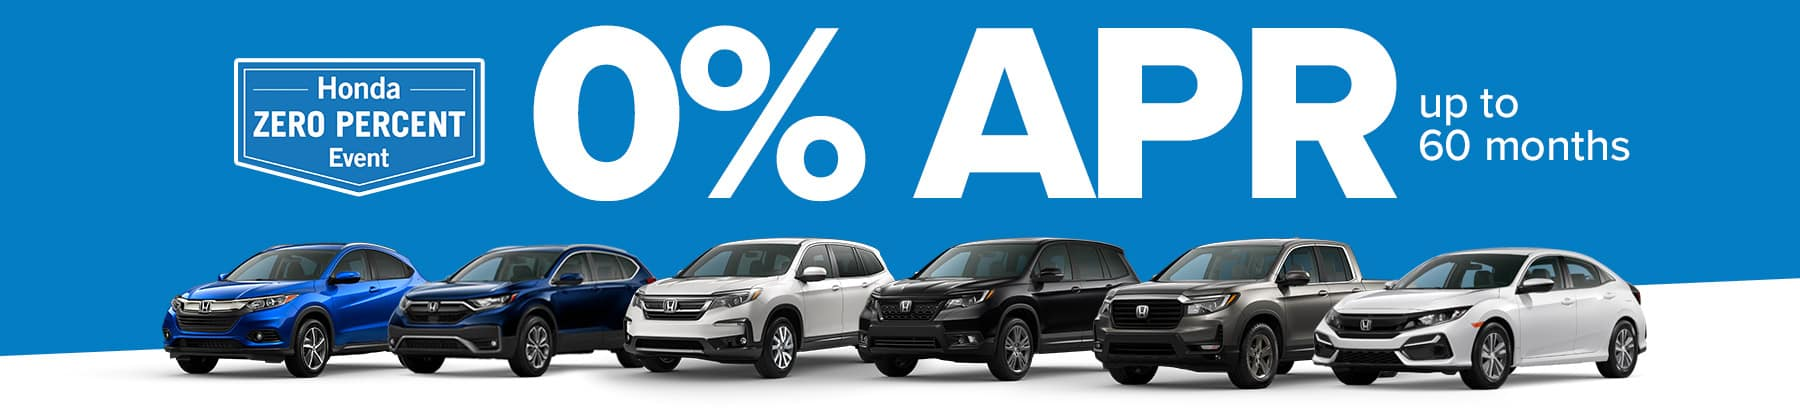 Honda Zero Percent Event - 0% APR up to 60 months